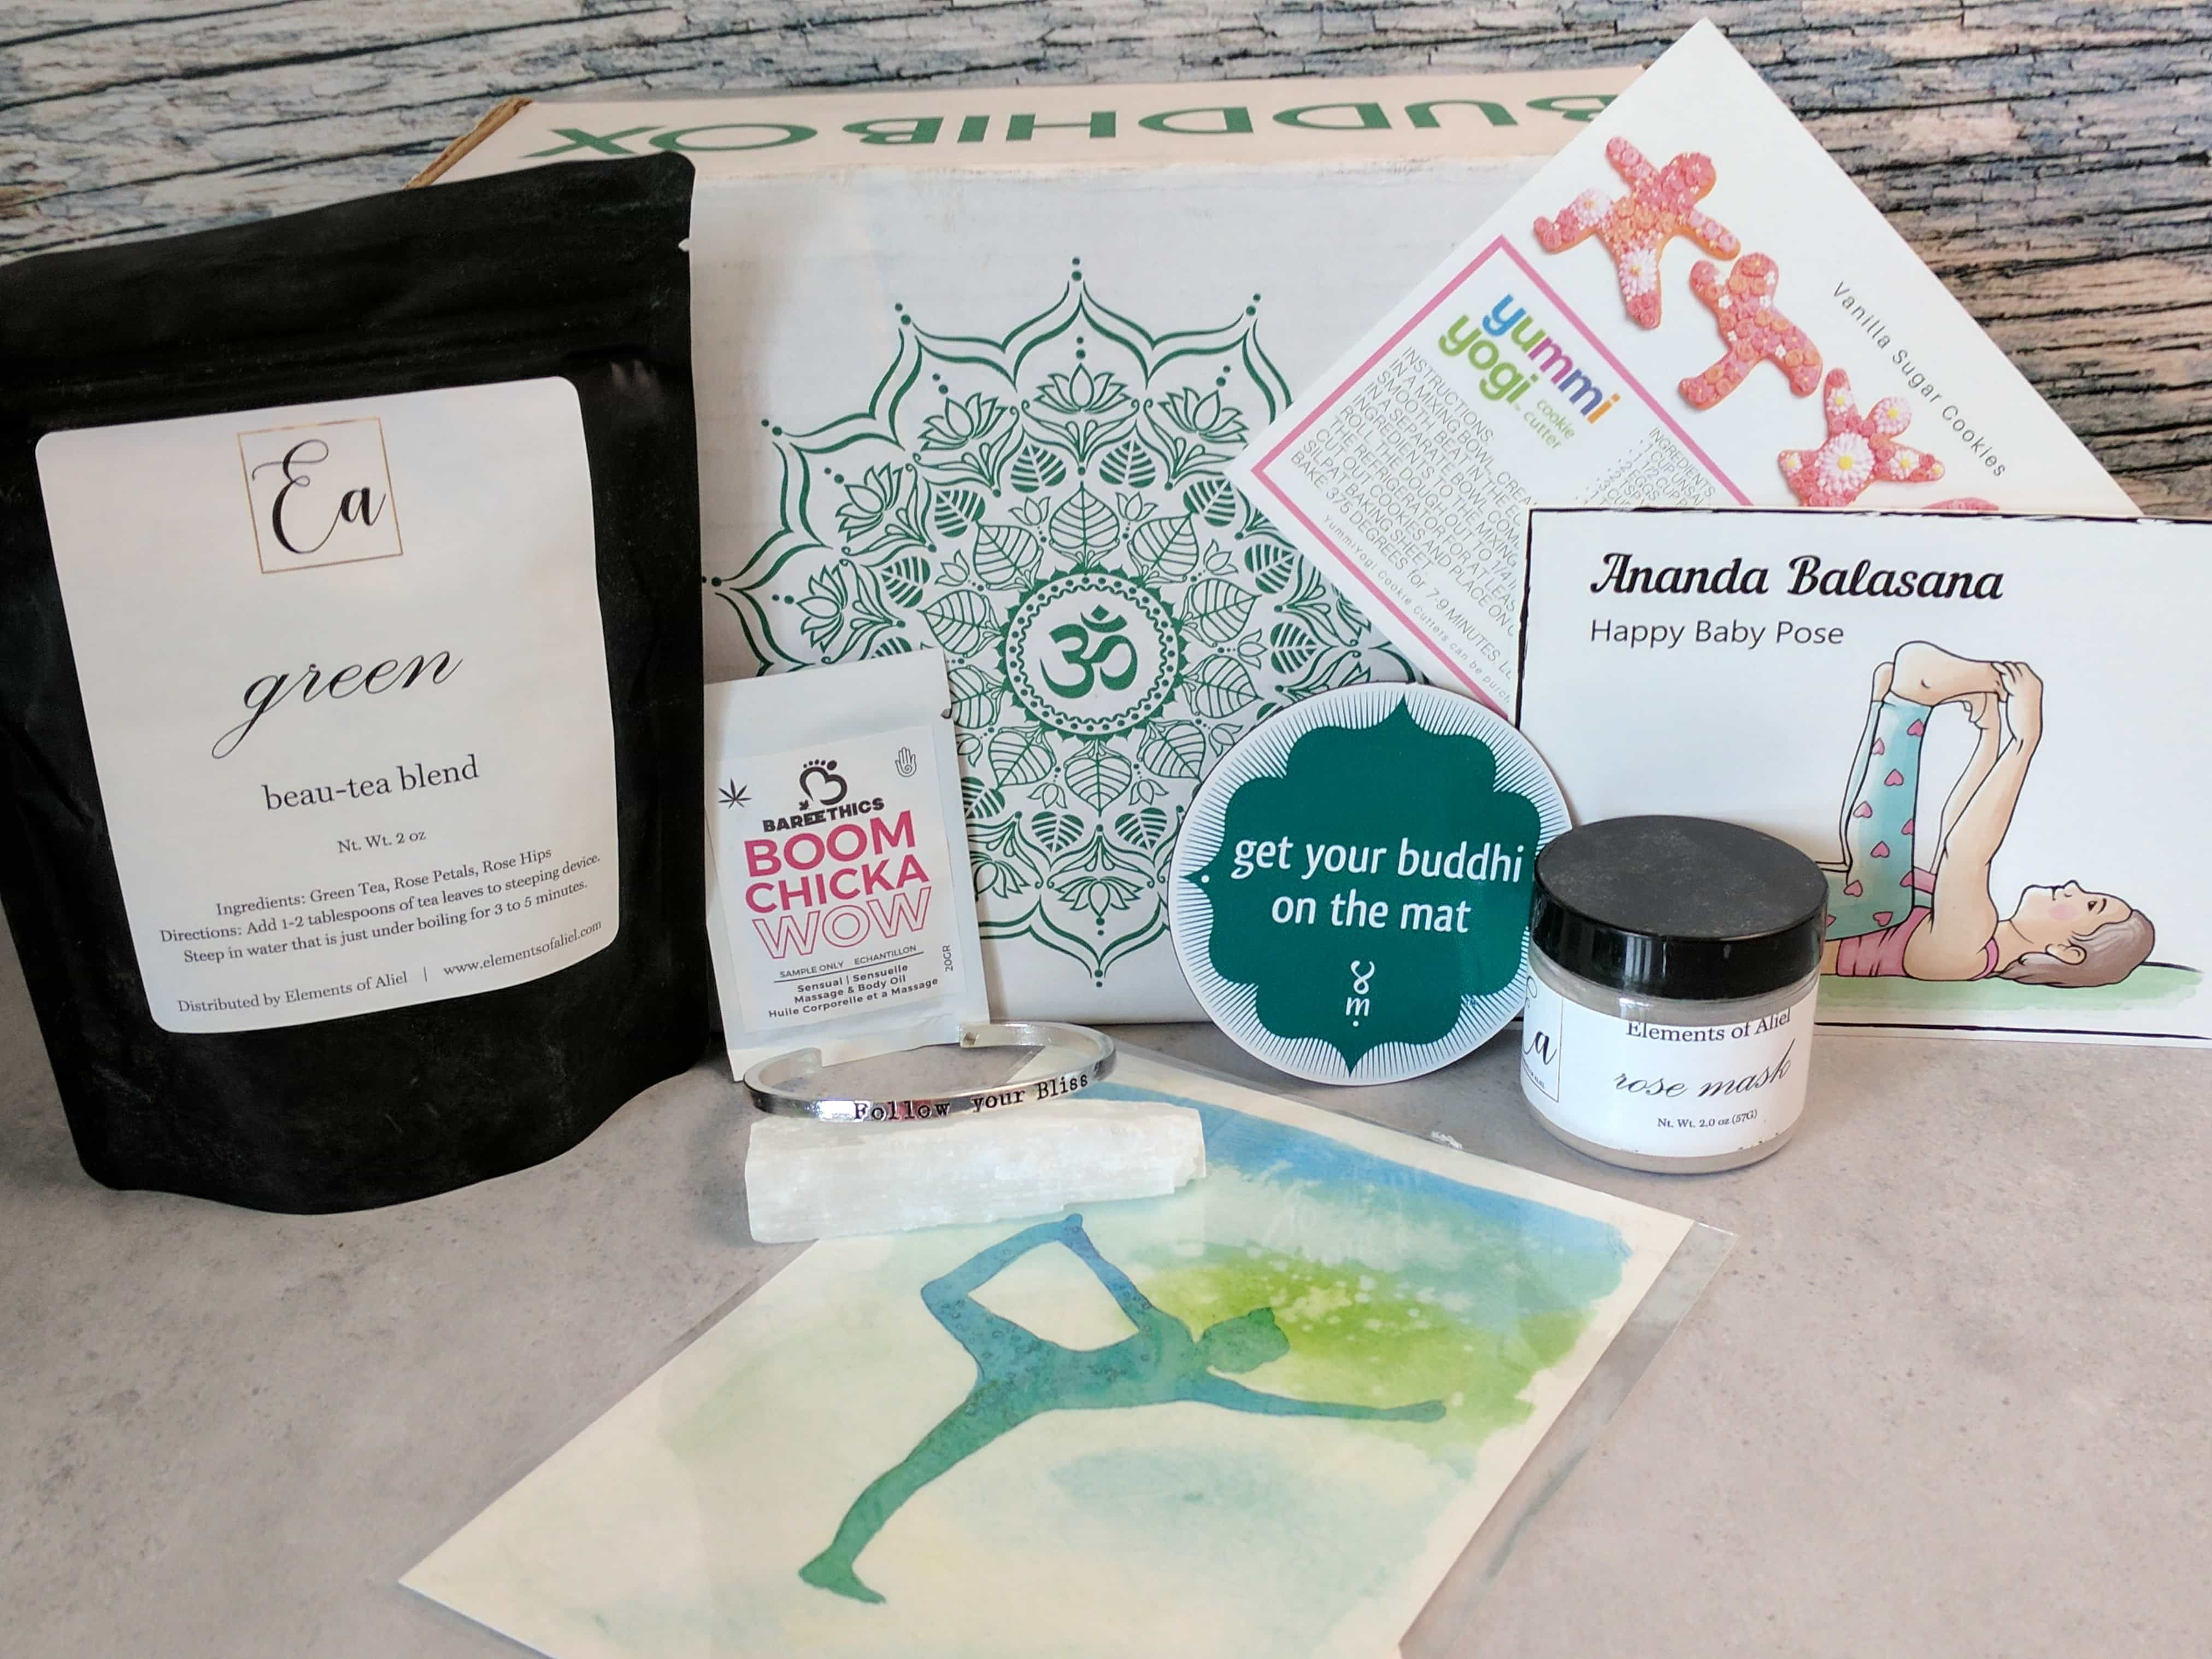 BuddhiBox is a monthly subscription that delivers items related to